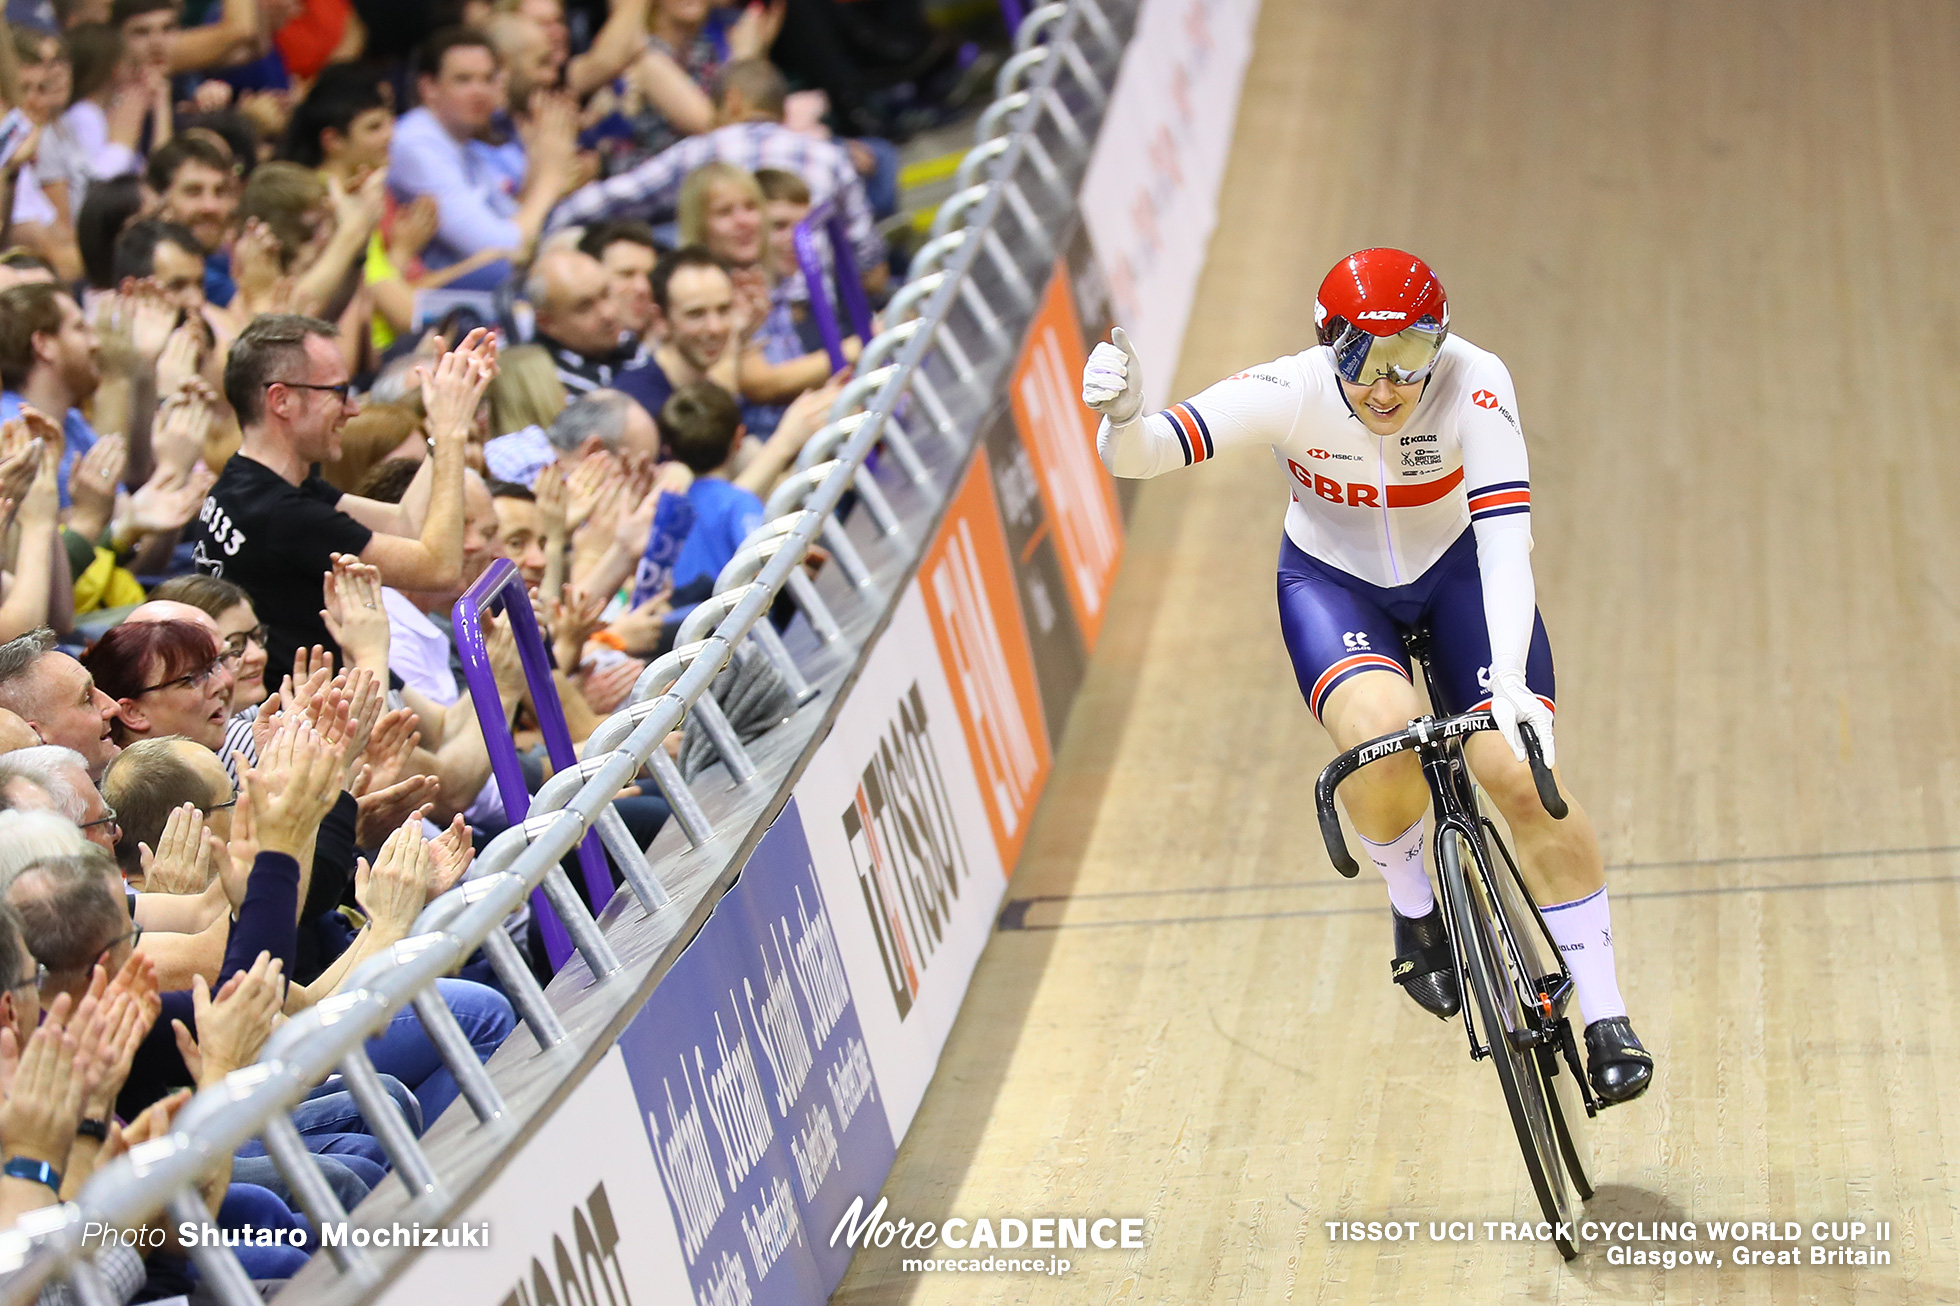 Final / Women's Keirin / TISSOT UCI TRACK CYCLING WORLD CUP II, Glasgow, Great Britain